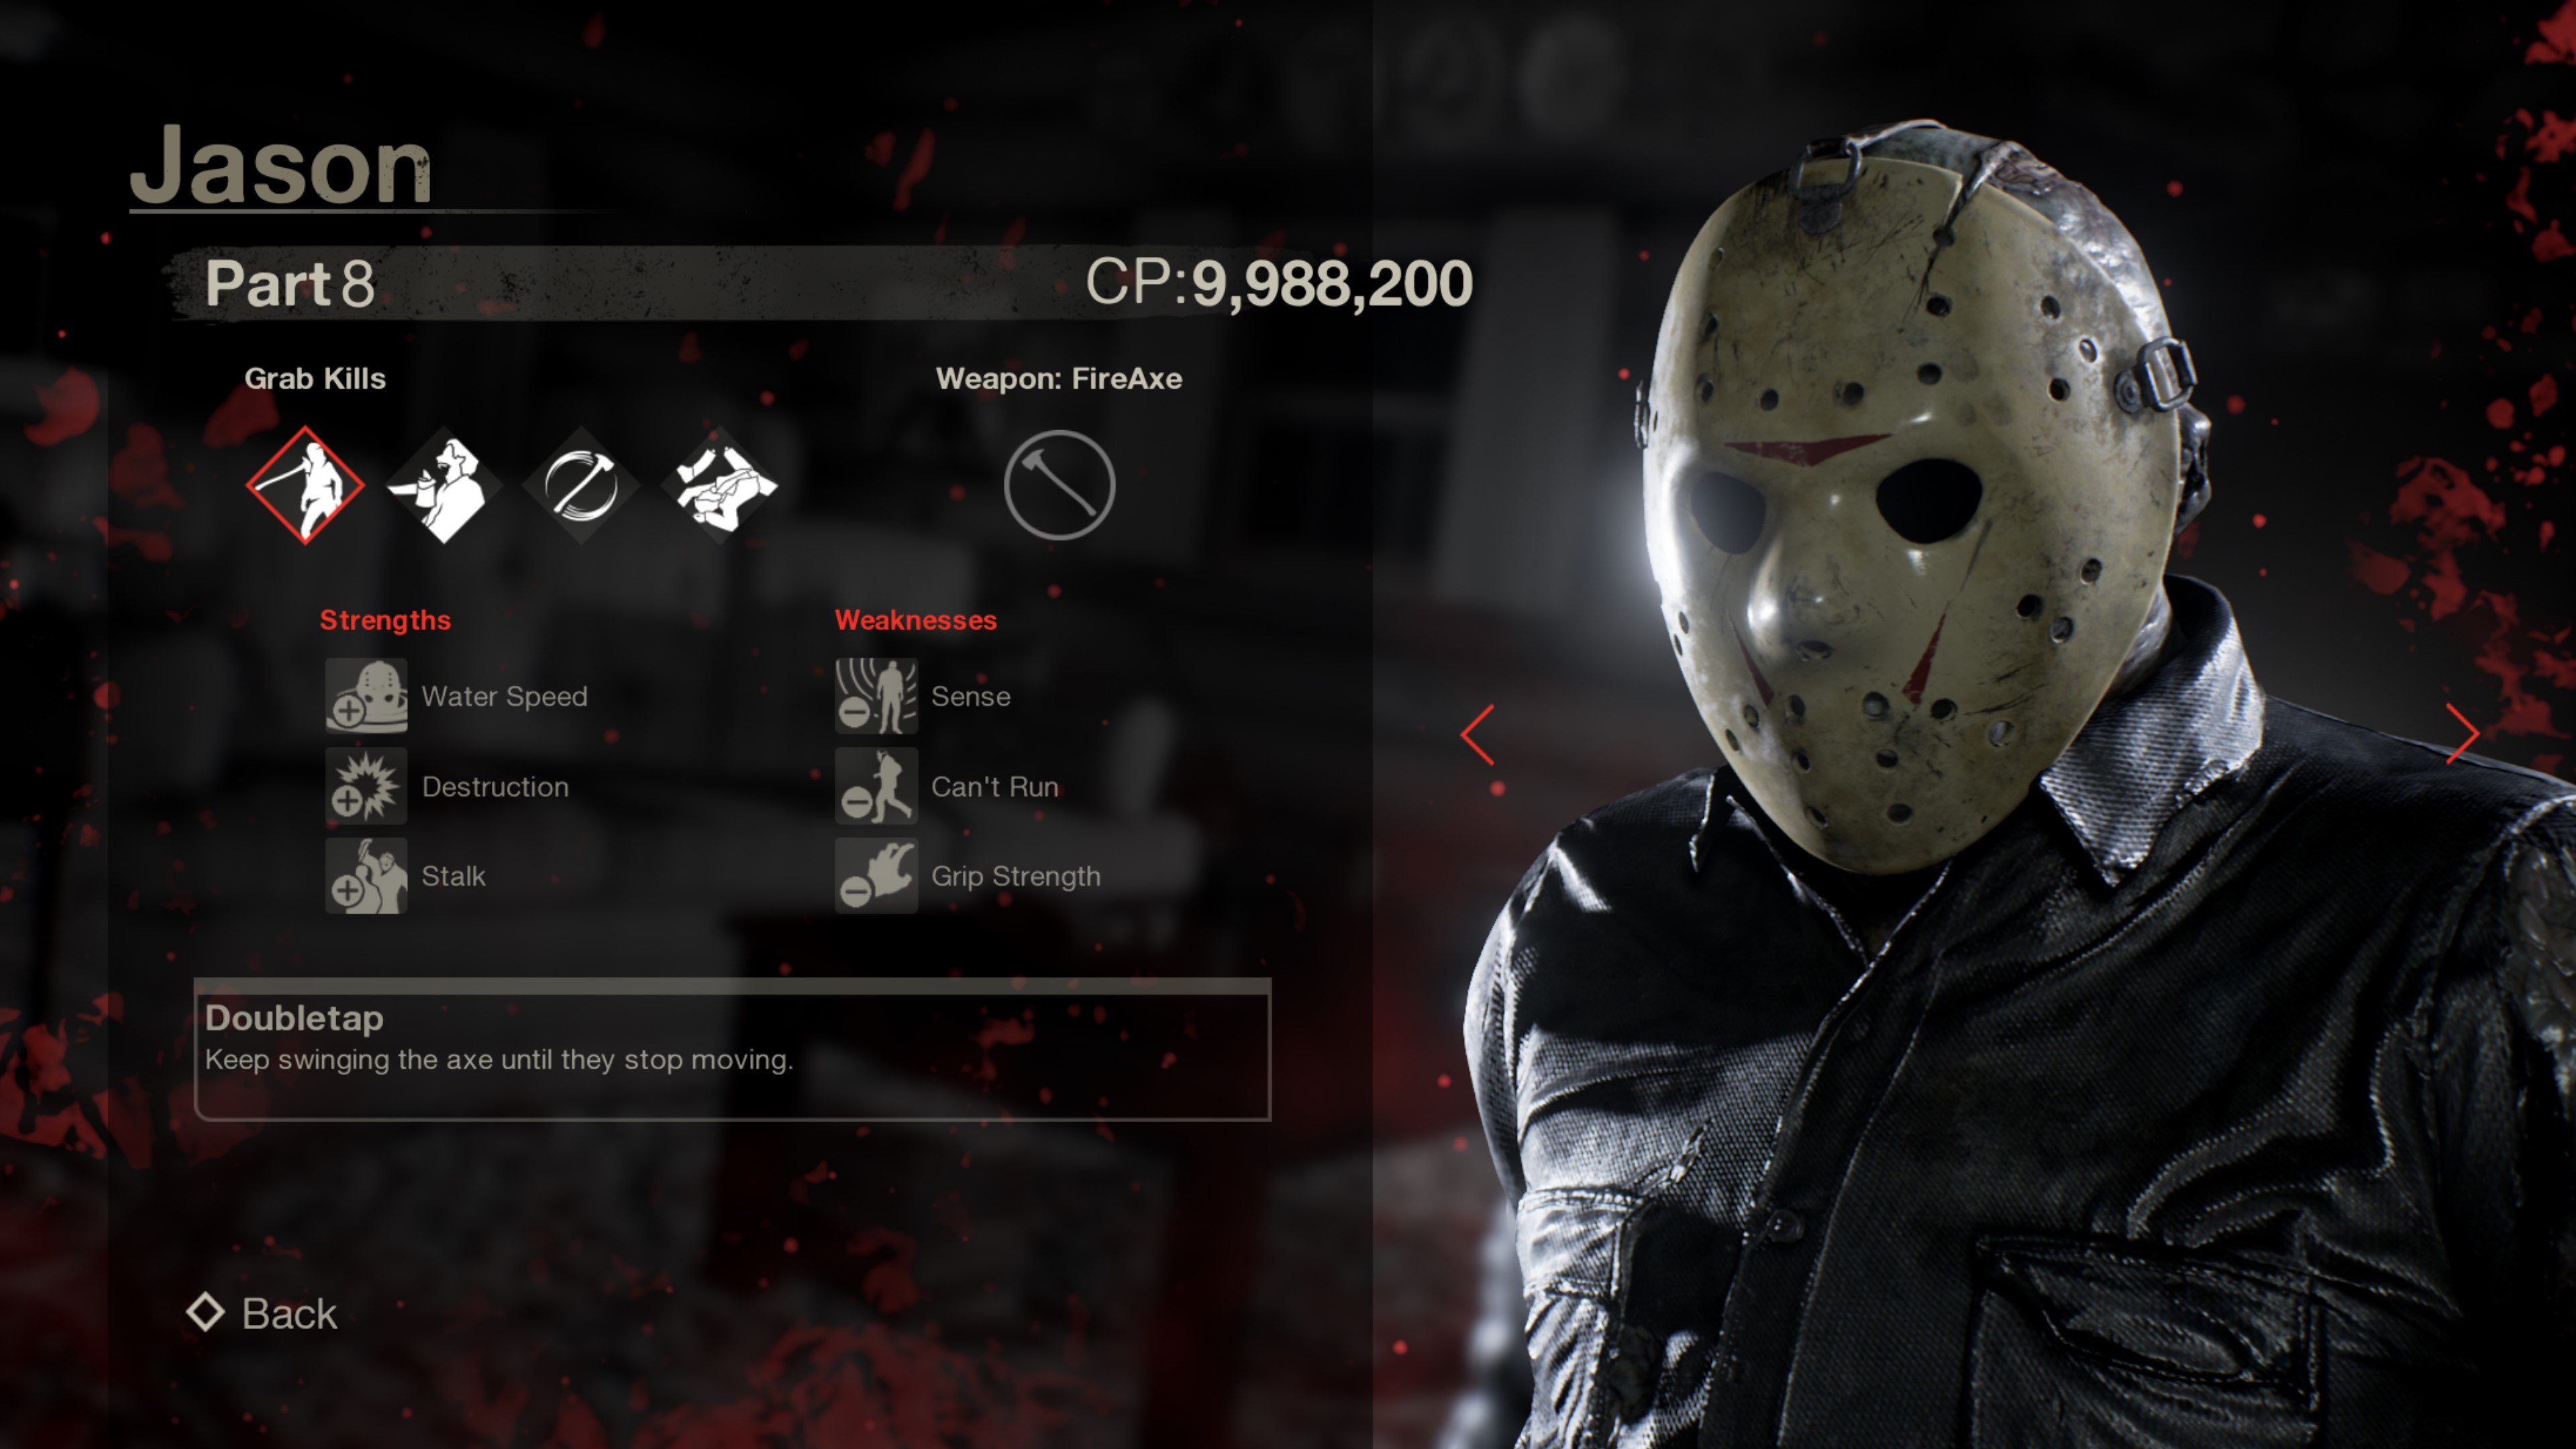 Jason from Friday the 13th part 8